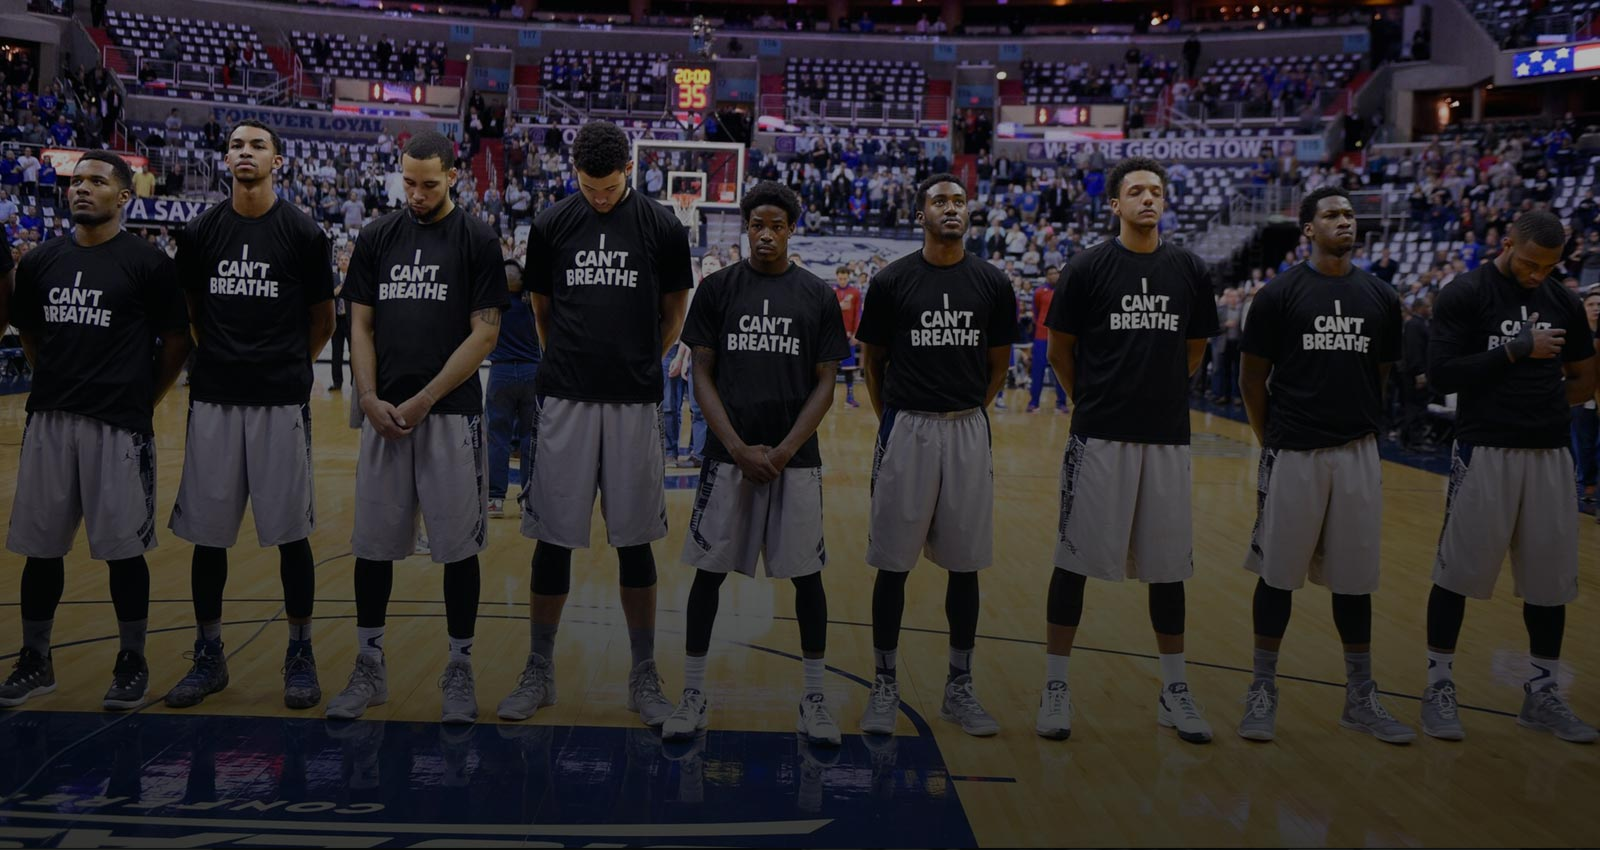 Basketball players wearing I Can't Breathe shirts